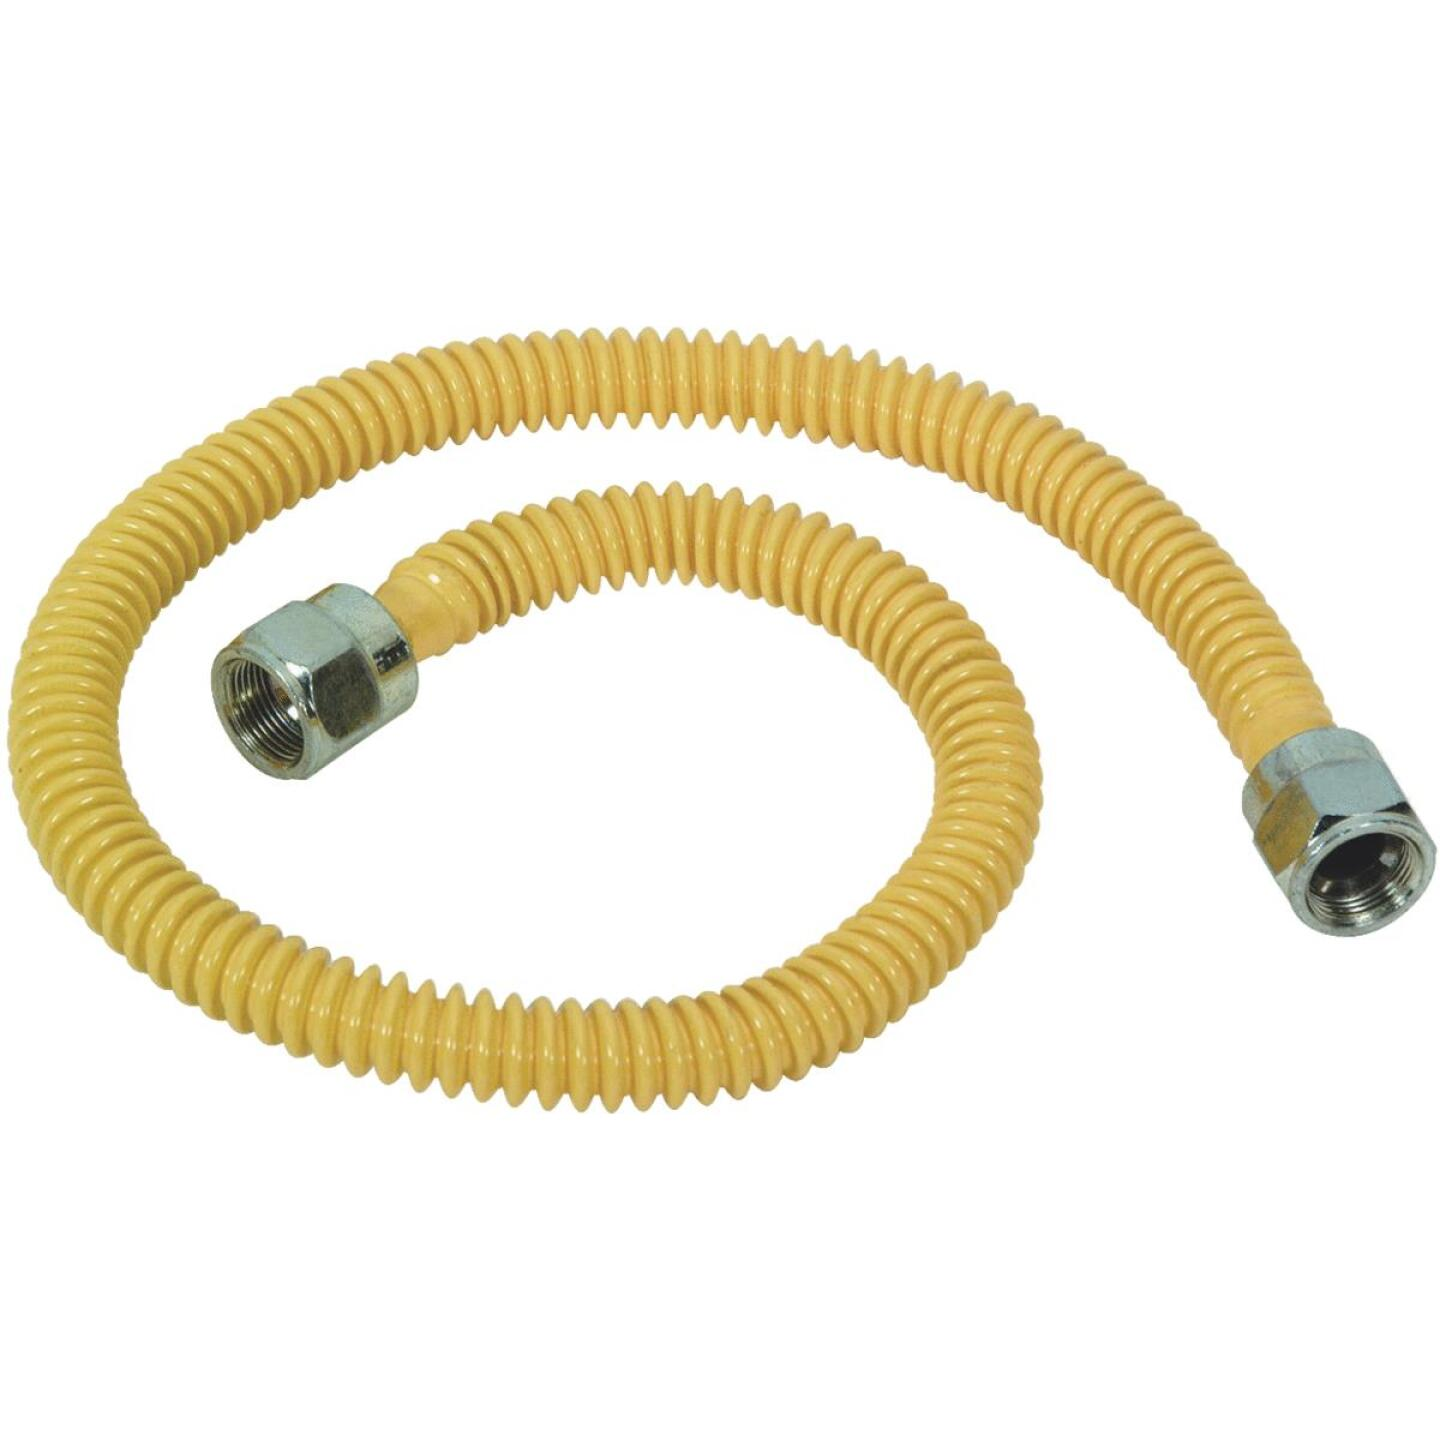 Watts 3/8 In. x 34 In. Flexible Gas Connector Image 1